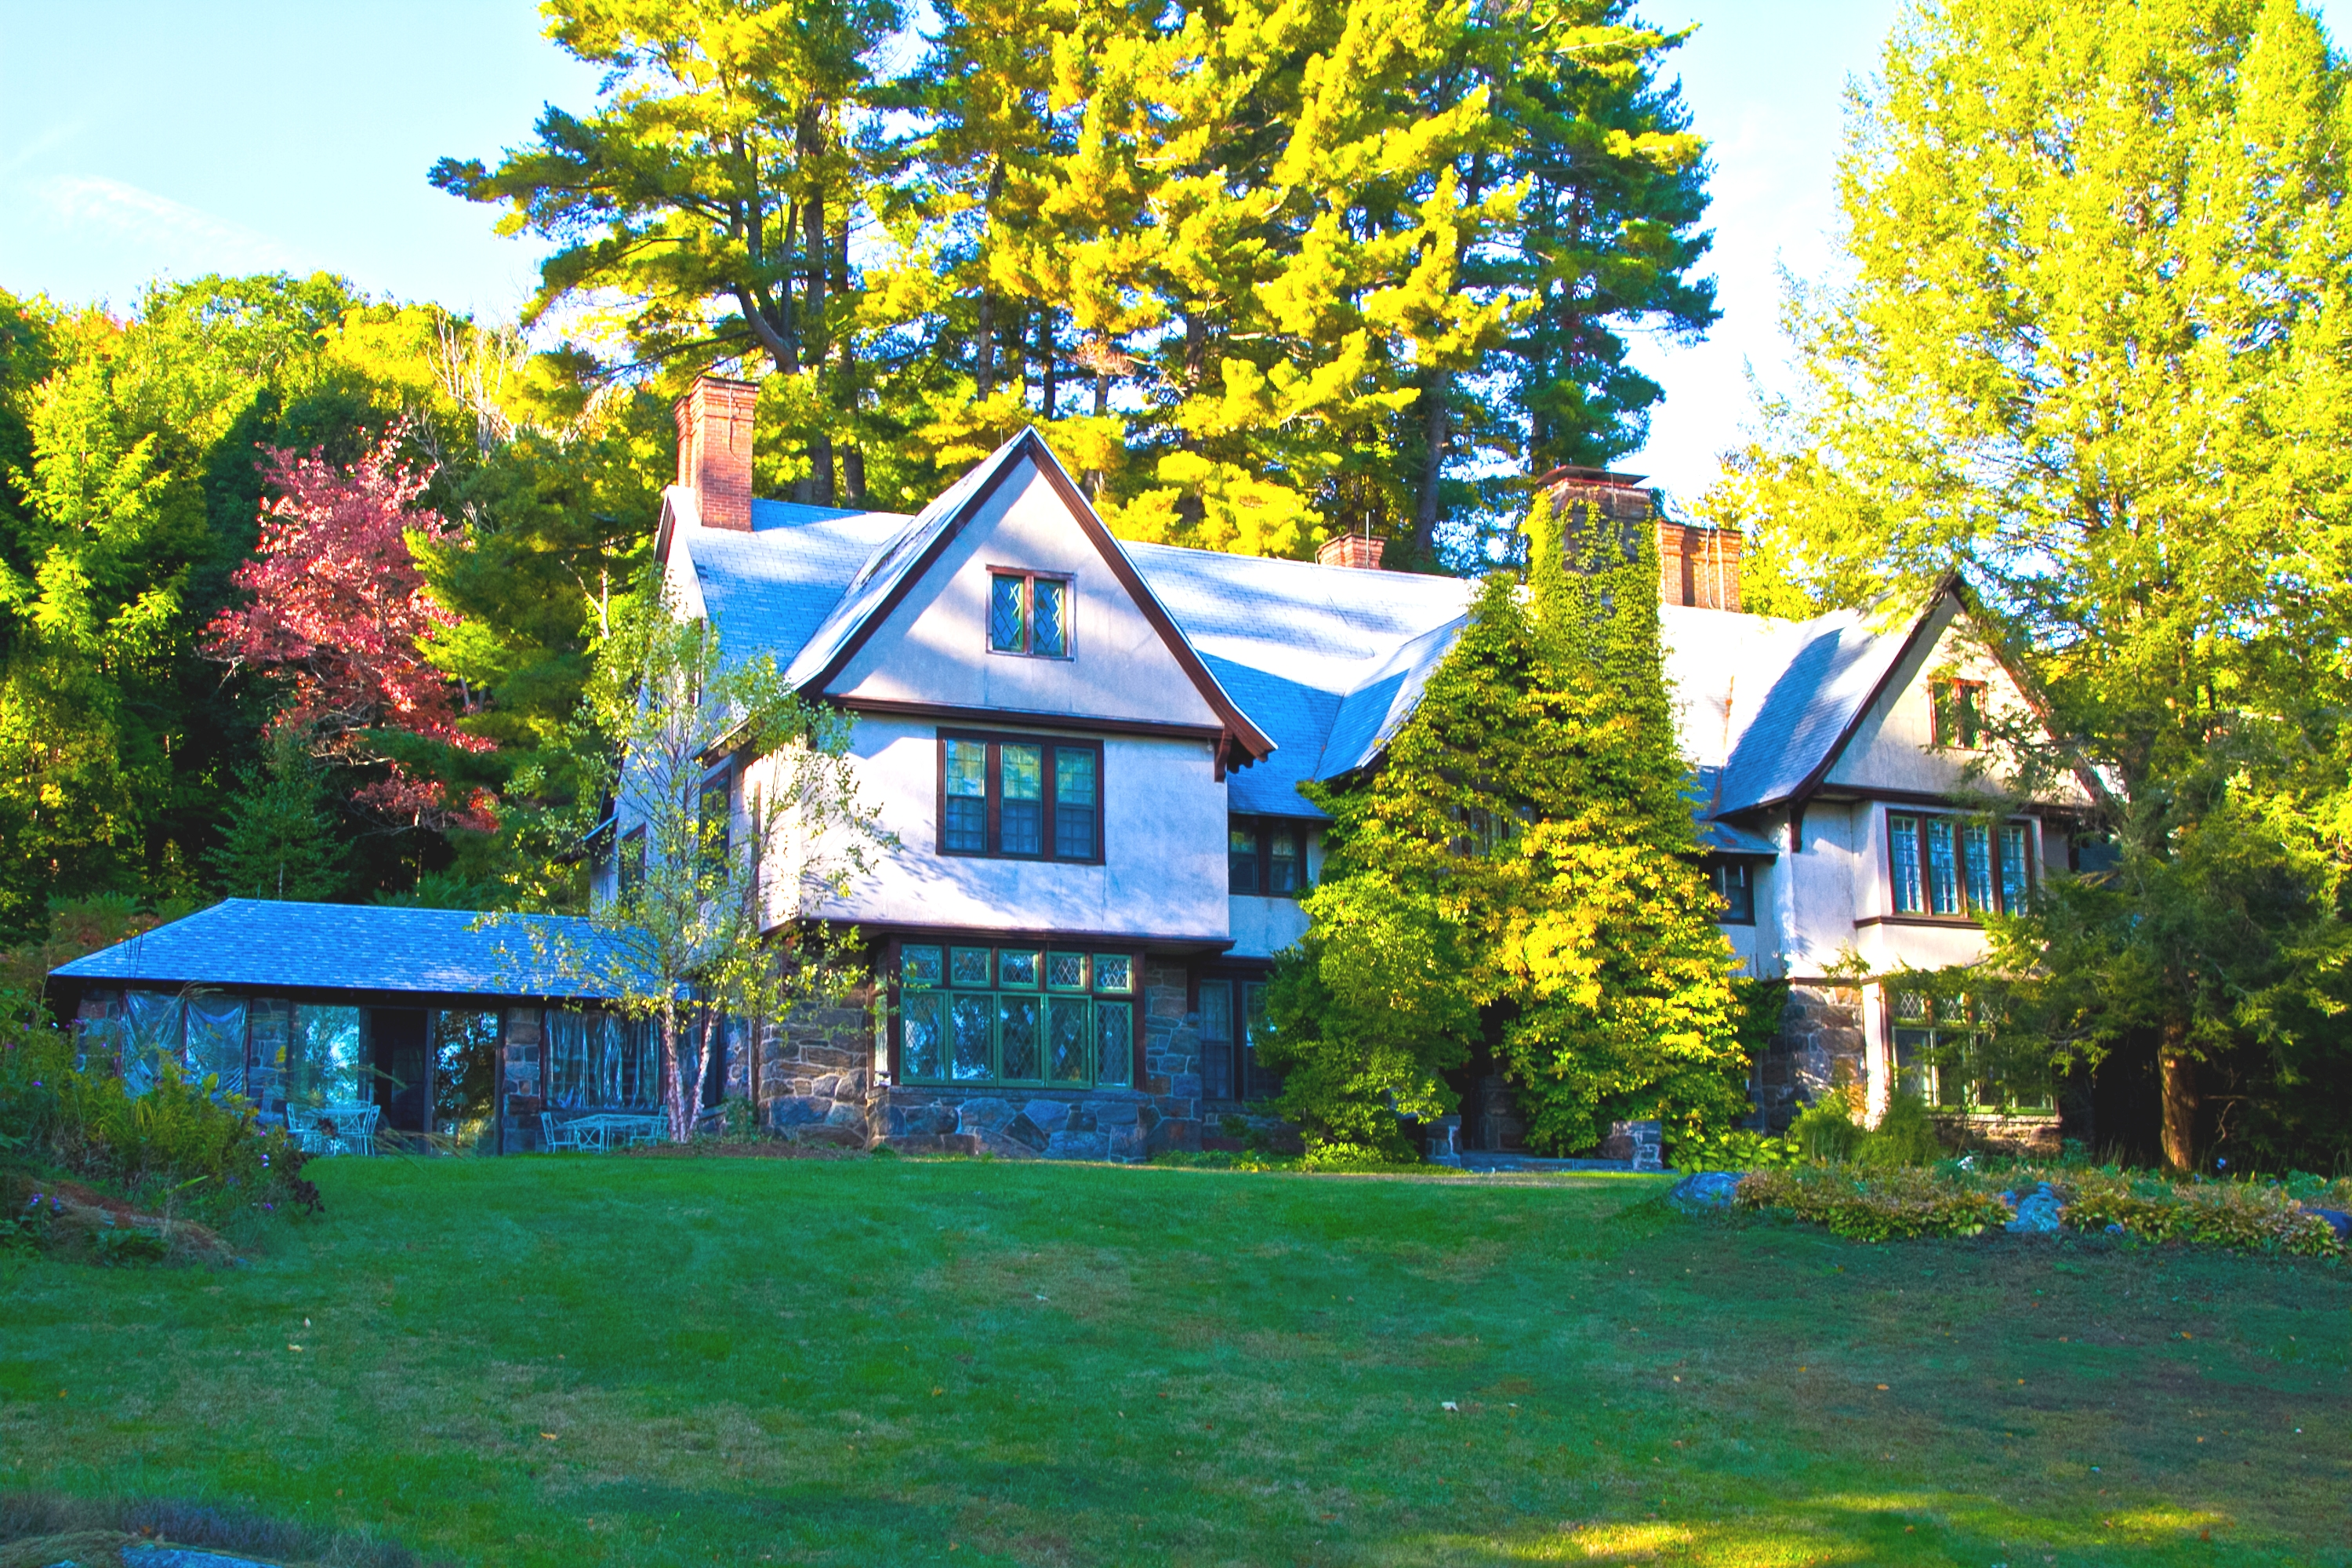 Casa Unifamiliar por un Venta en A Magnificent Tudor Mansion with Views, Majestically Set on 16+ Lenox Acres 399 Under Mountain Rd Lenox, Massachusetts, 01240 Estados Unidos